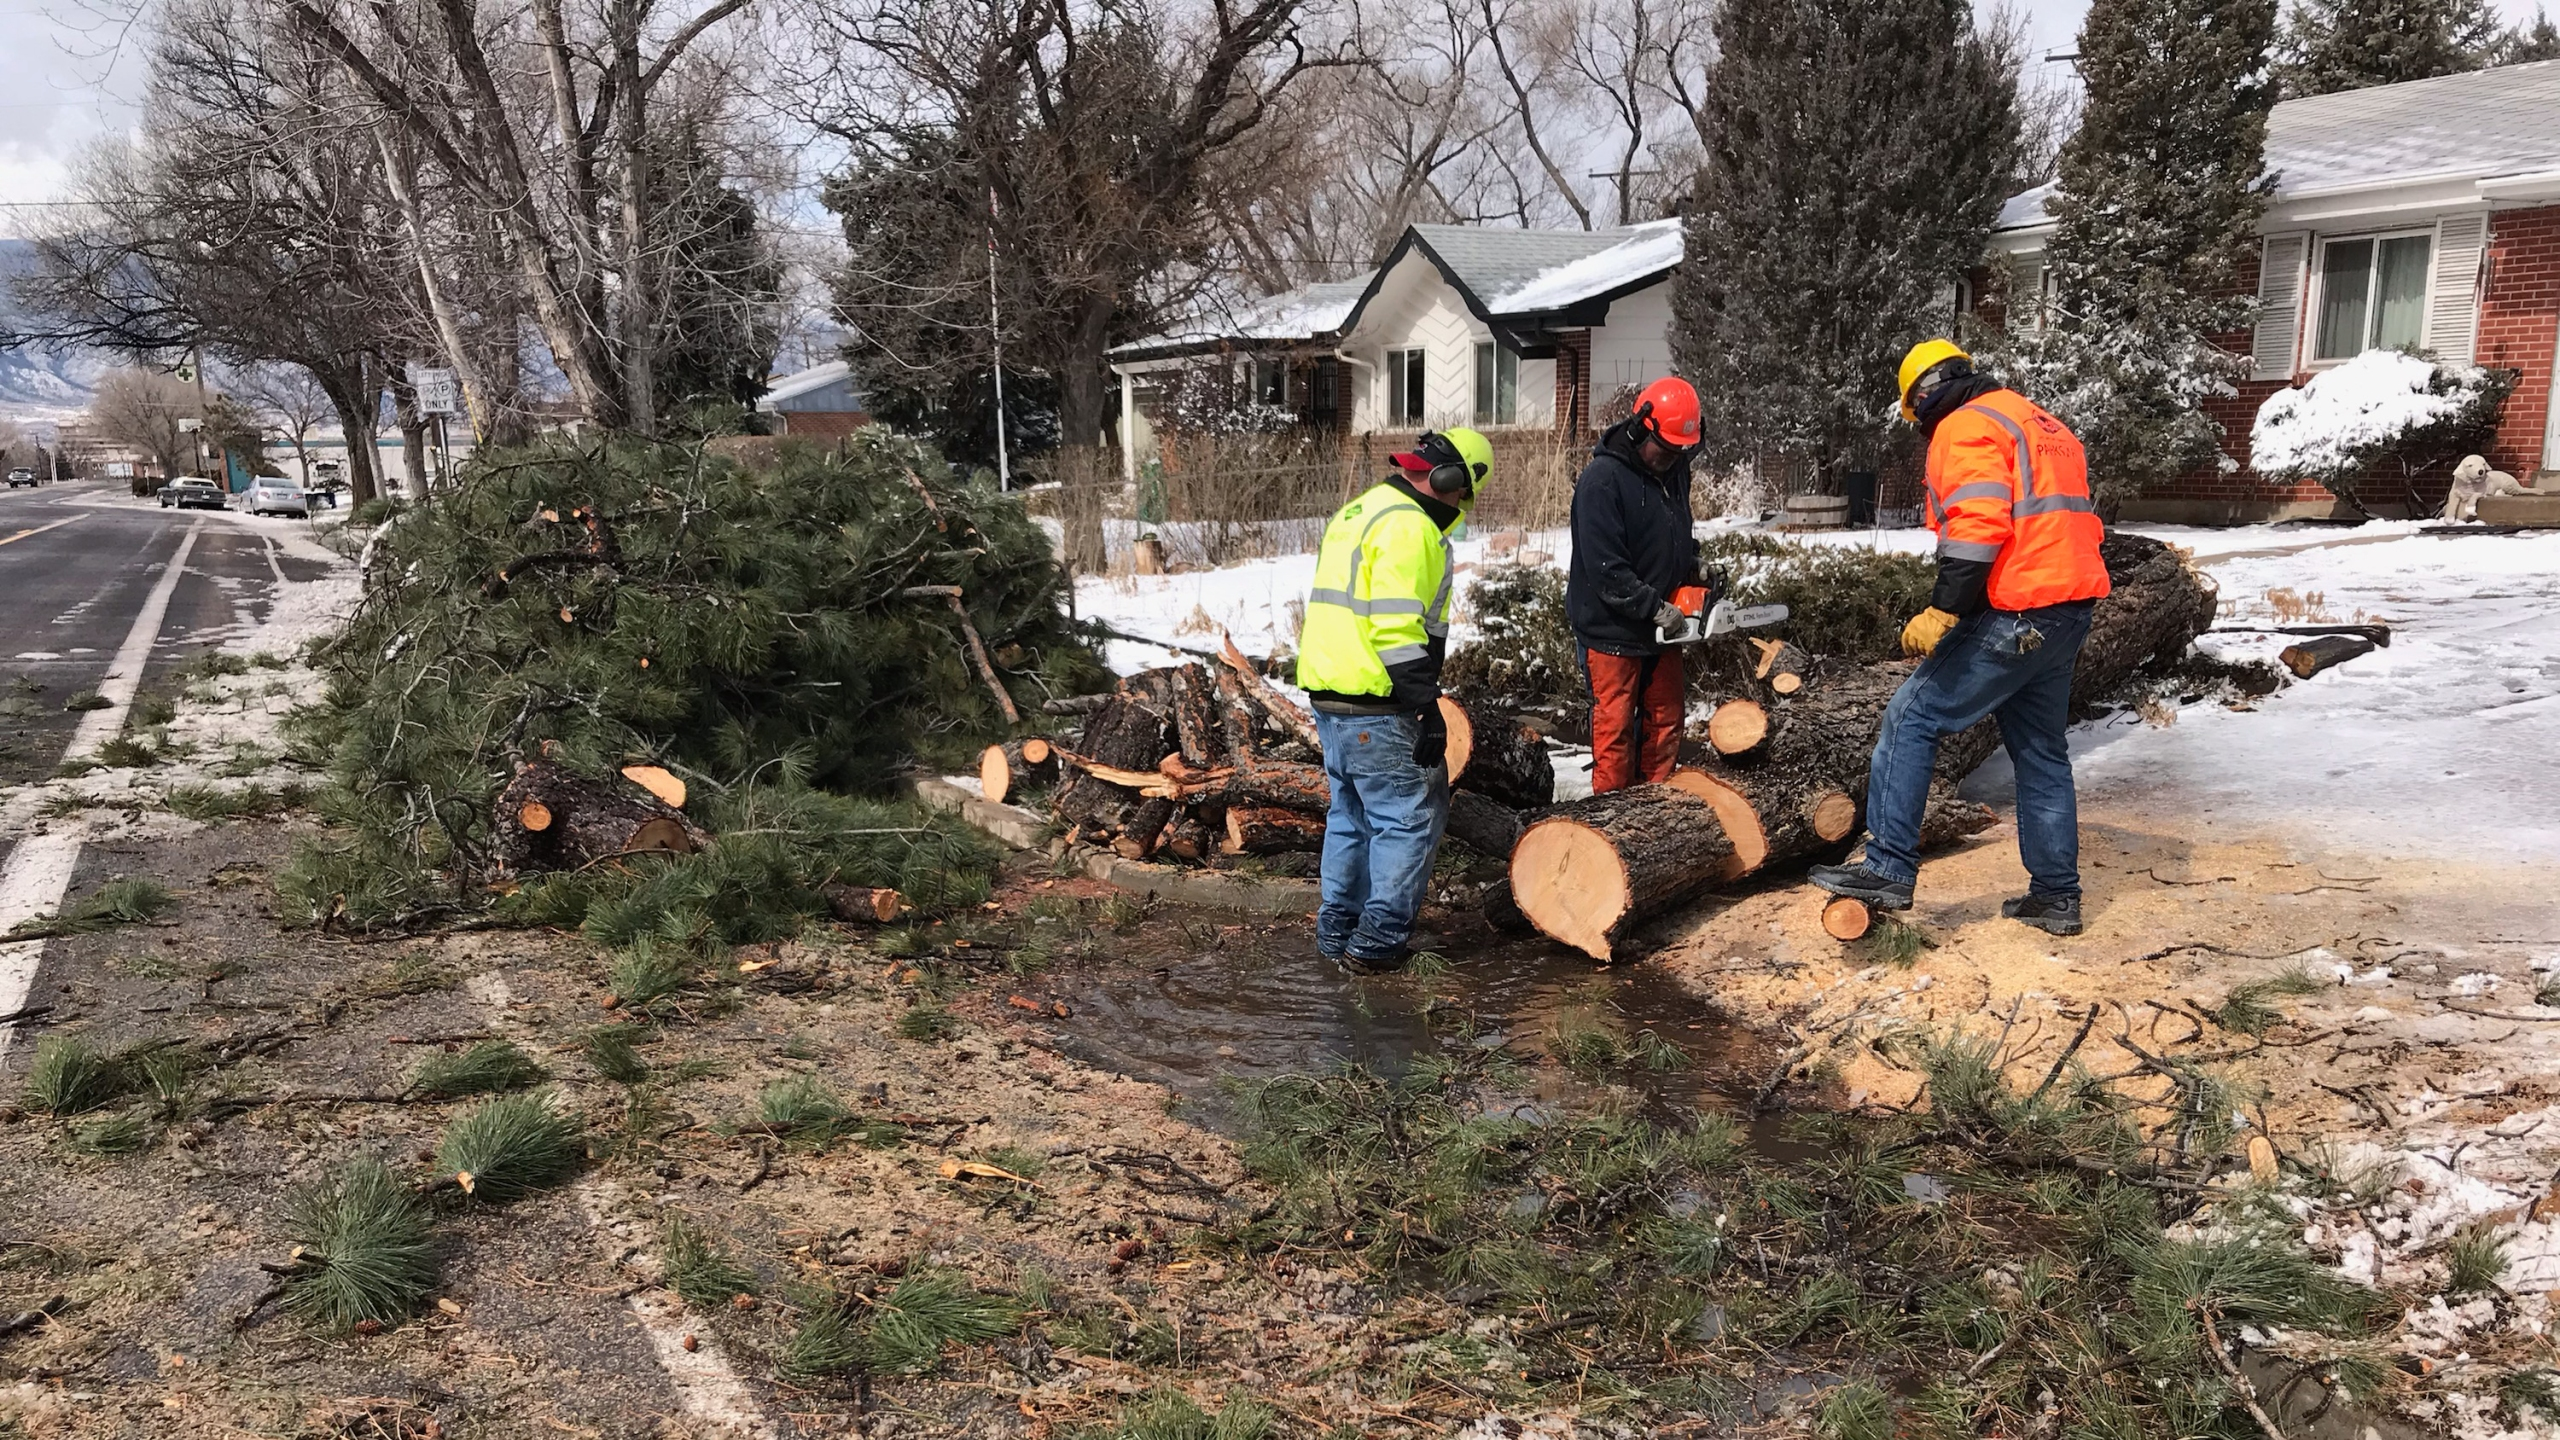 Colorado Springs Parks, Recreation and Cultural Services employees clear a fallen tree from the area of Bijou Street east of downtown Colorado Springs